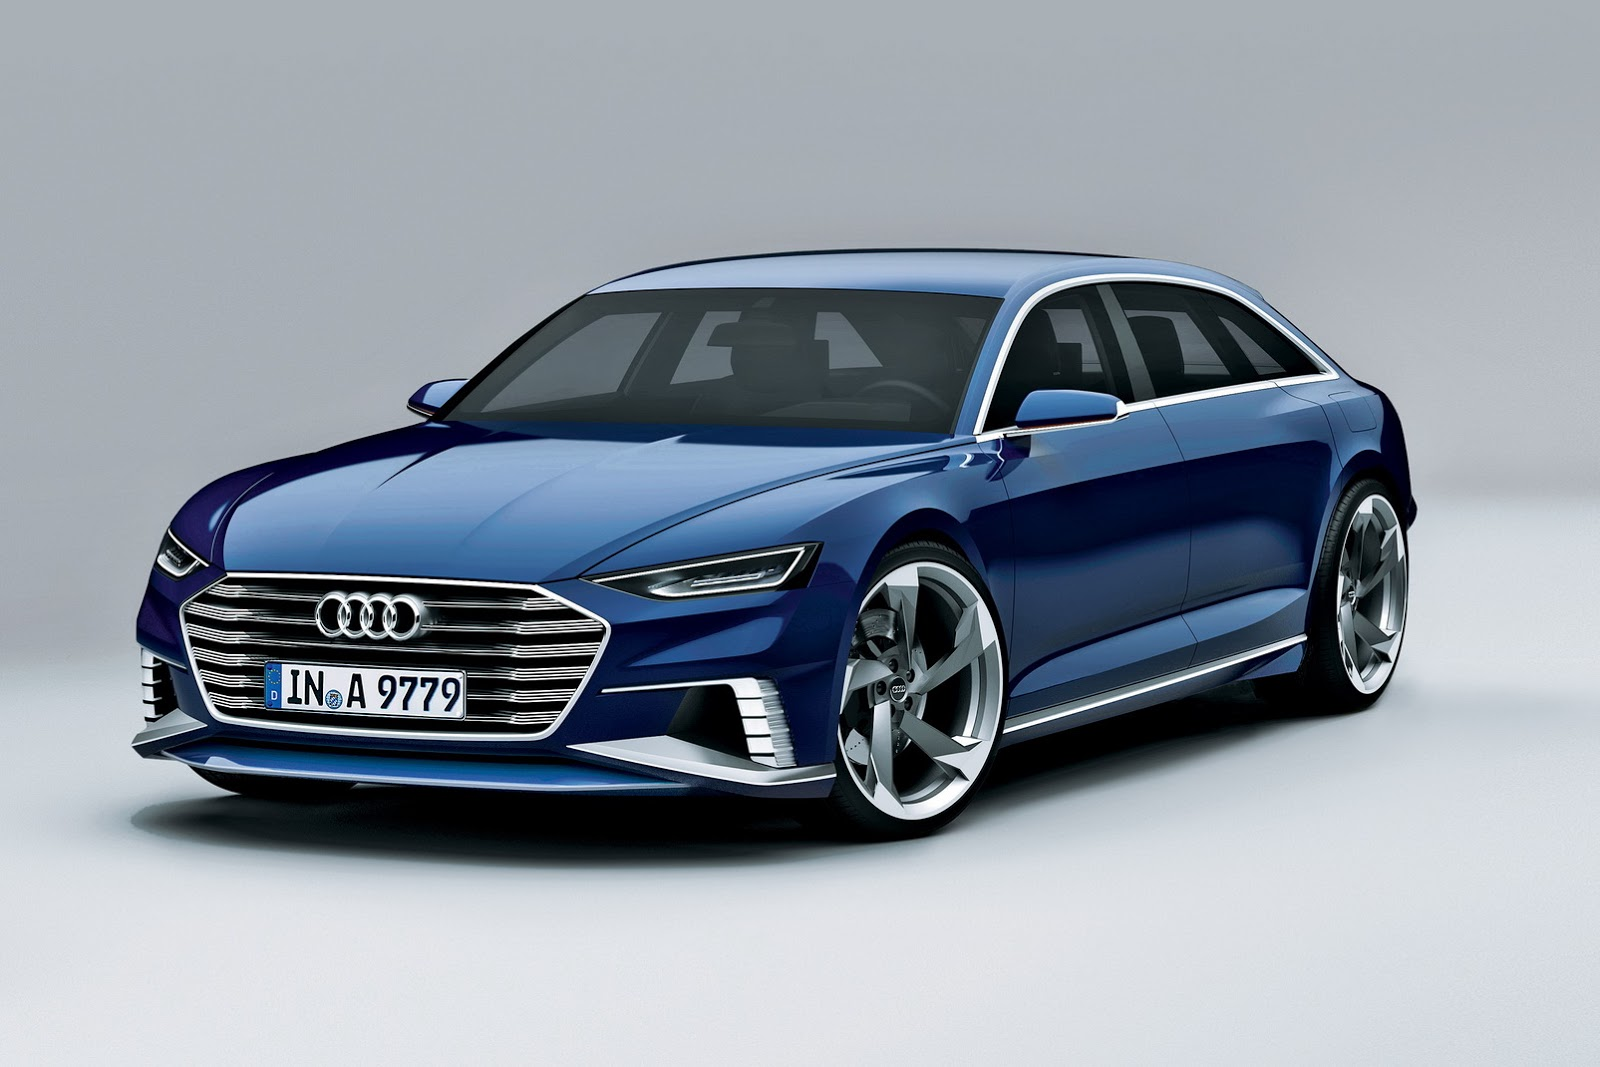 audi prologue avant to debut at geneva motor show 2015 gtspirit. Black Bedroom Furniture Sets. Home Design Ideas